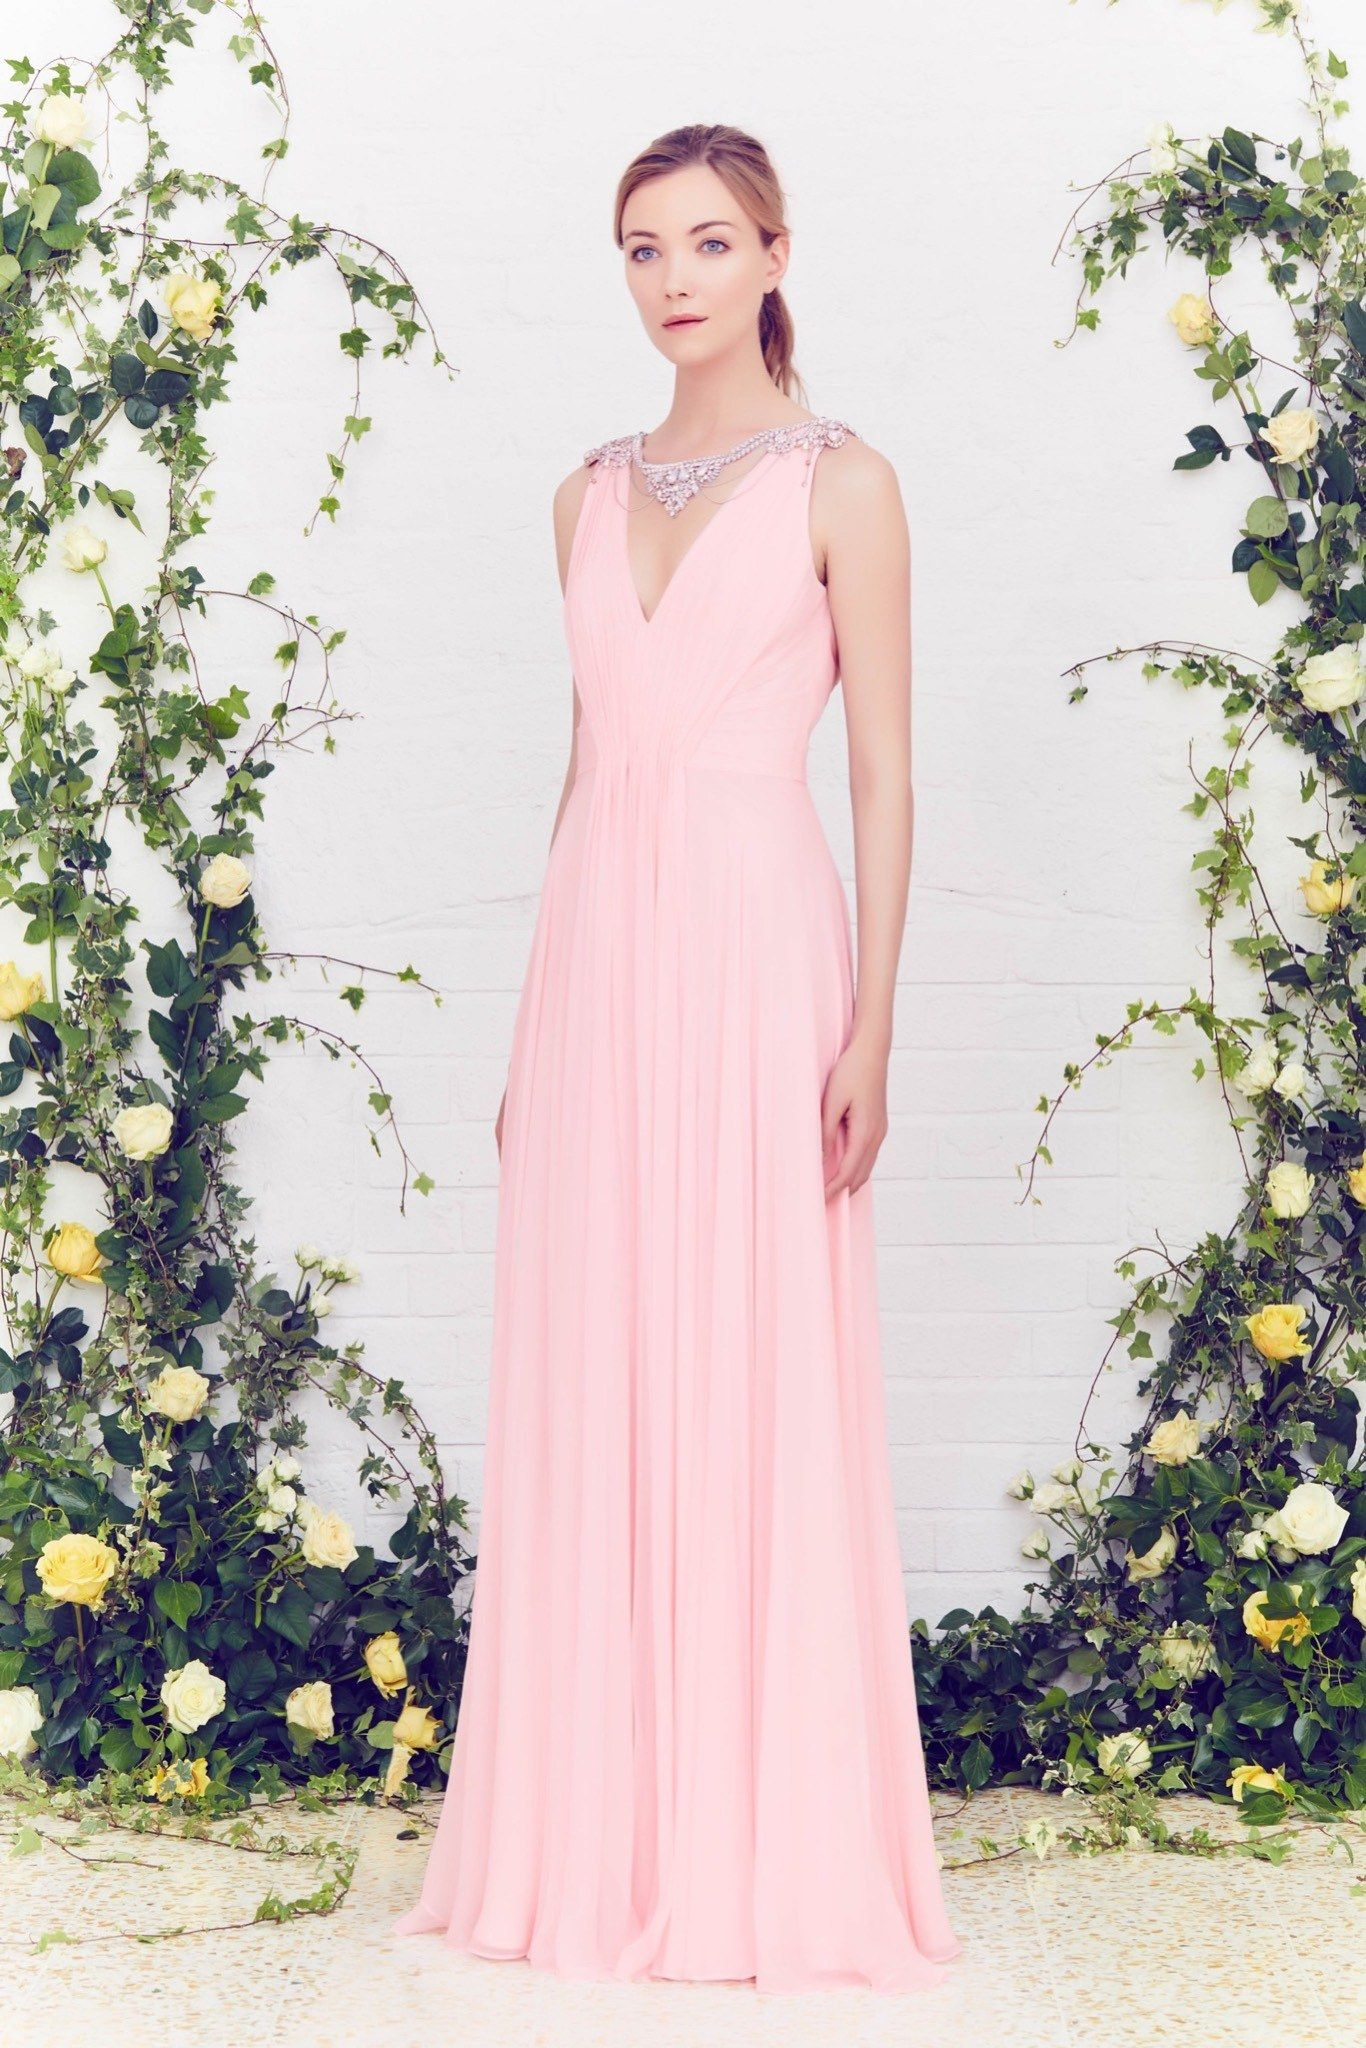 Jenny Packham Resort 2016 Fashion Show | Vestiditos